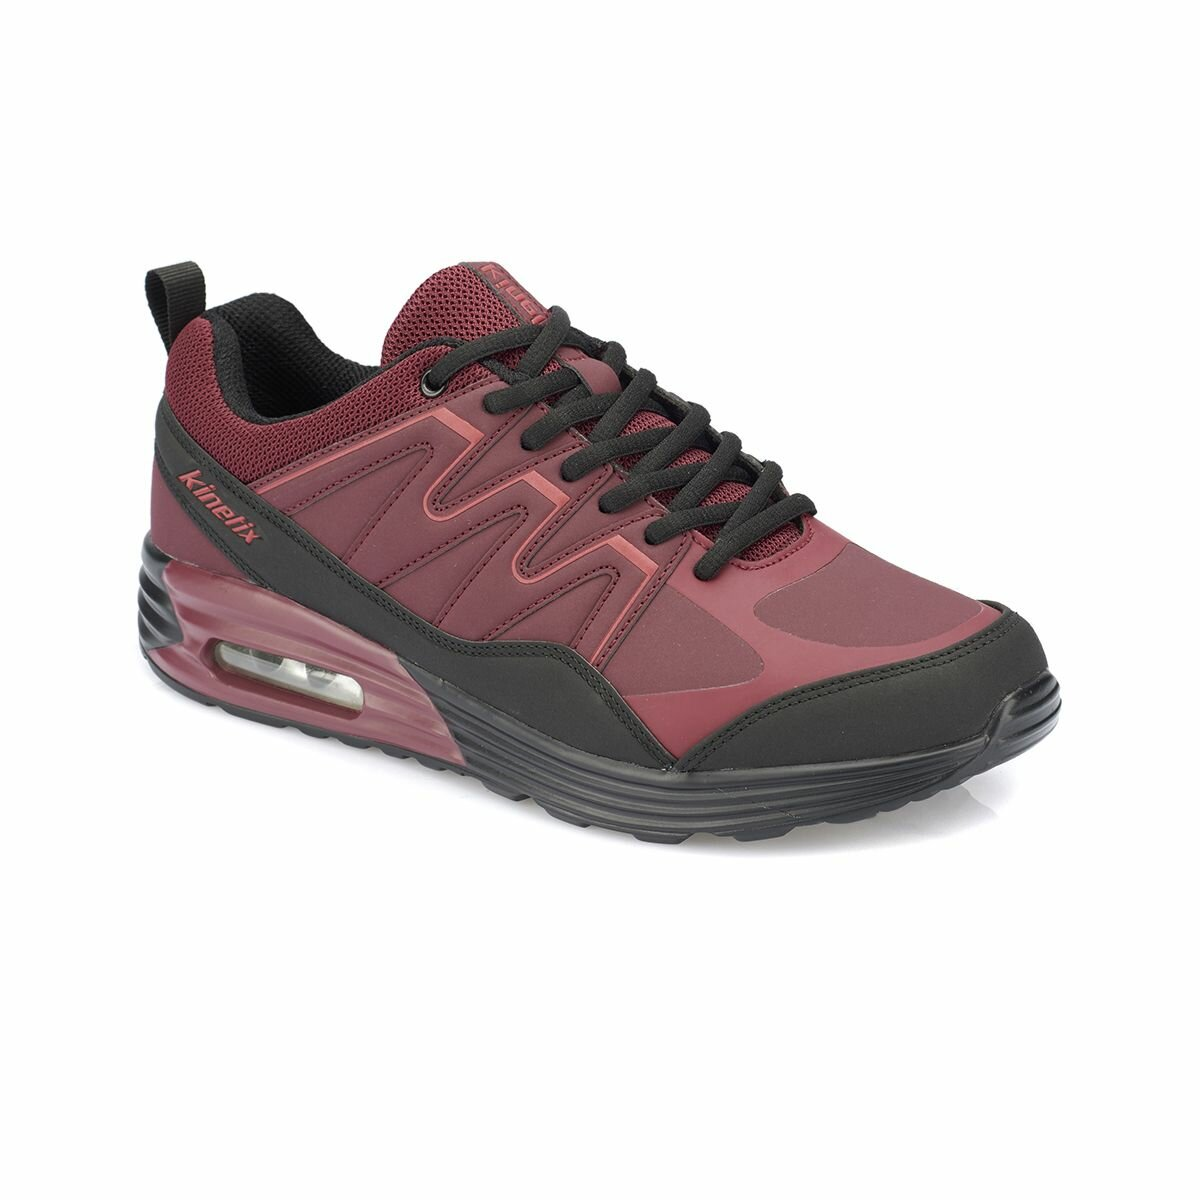 FLO ARBOR Burgundy Men 'S Sneaker Shoes KINETIX